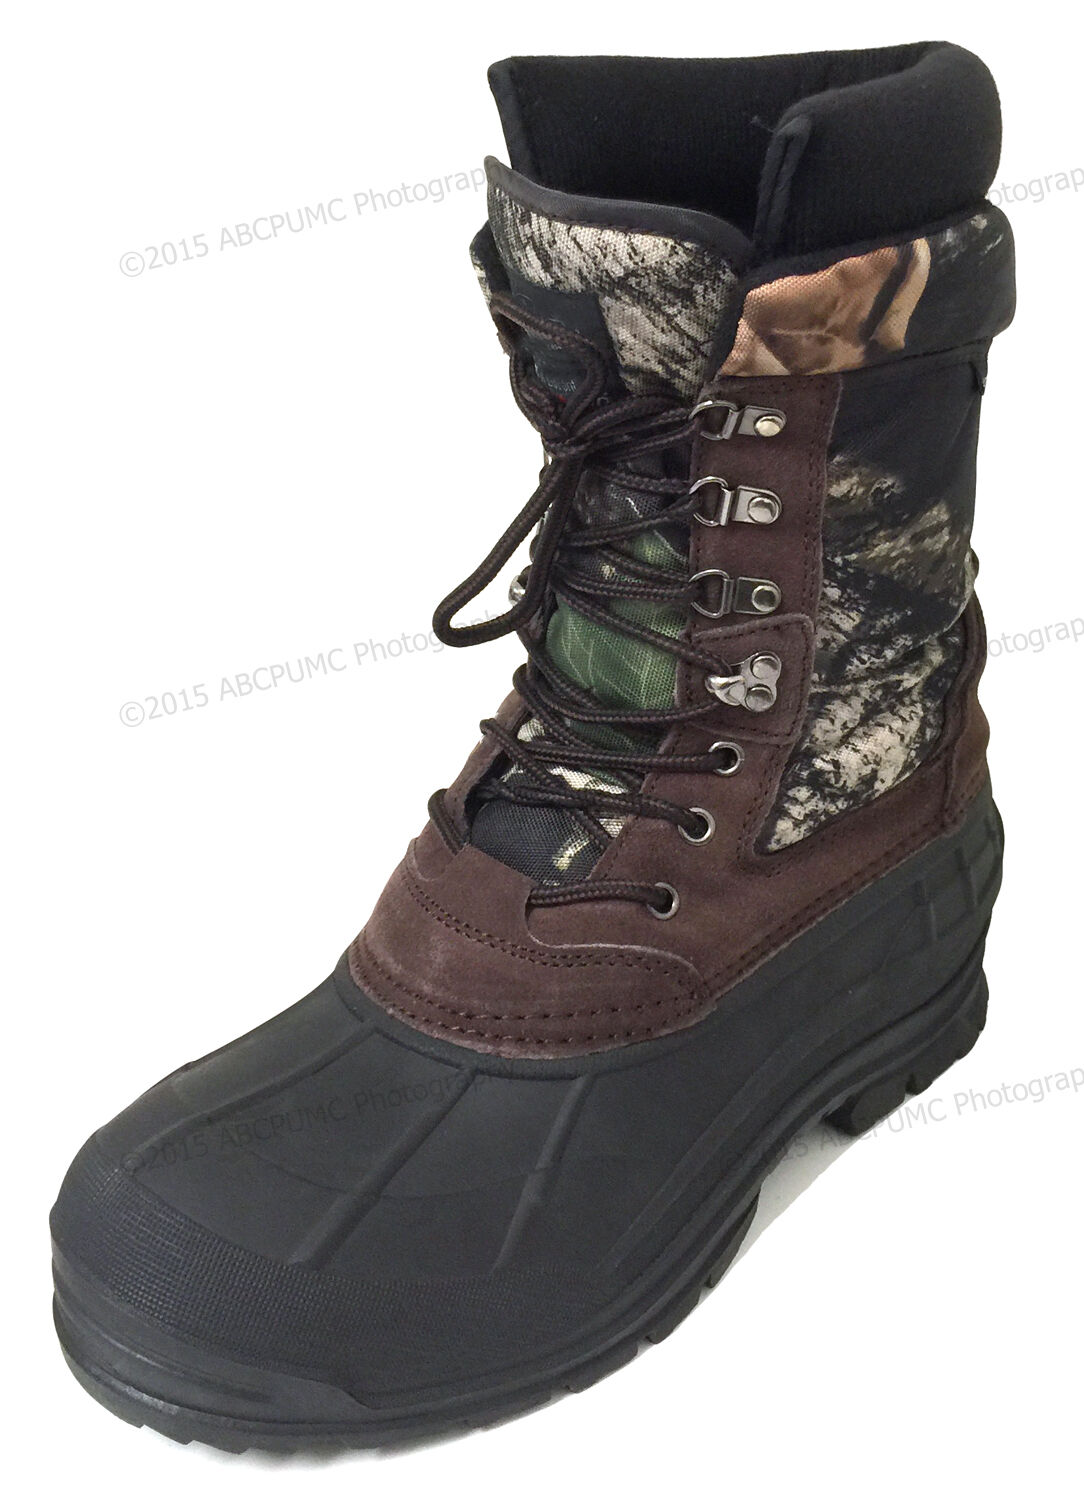 Mens Winter Snow Boots Camouflage 10  Leather Waterproof Insulated Hunting shoes